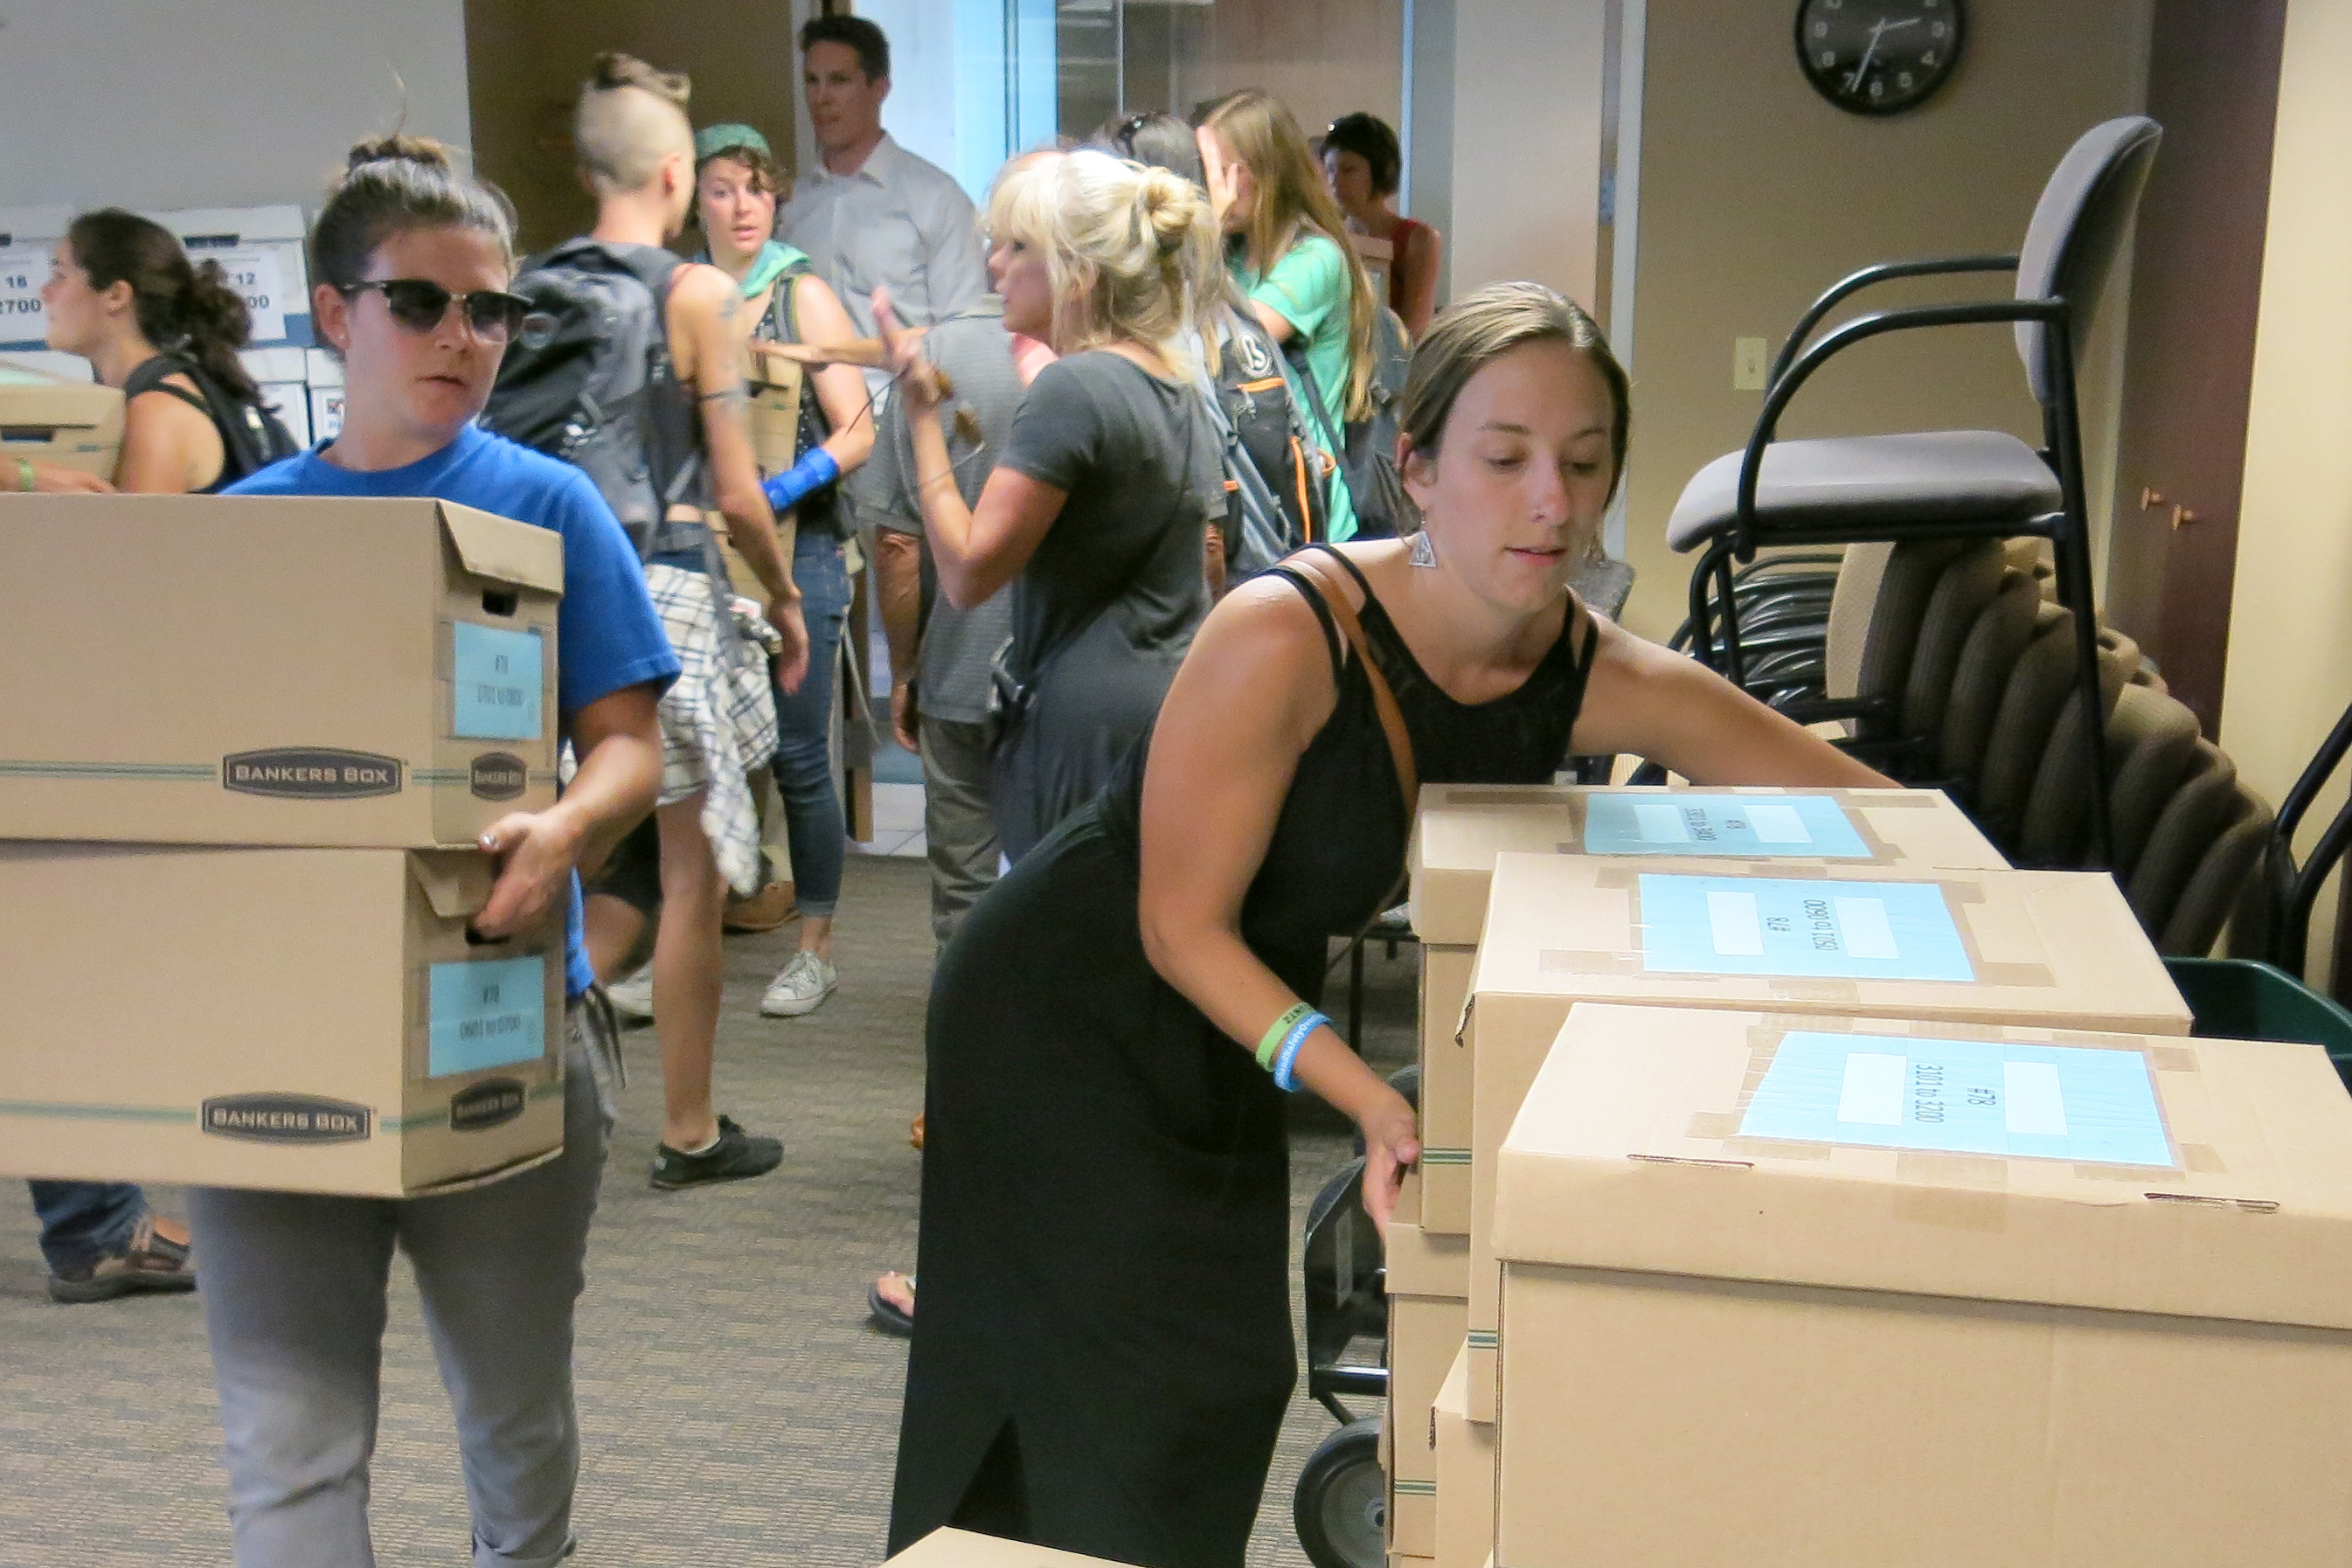 Photo: Oil And Gas Ballot Drop Off